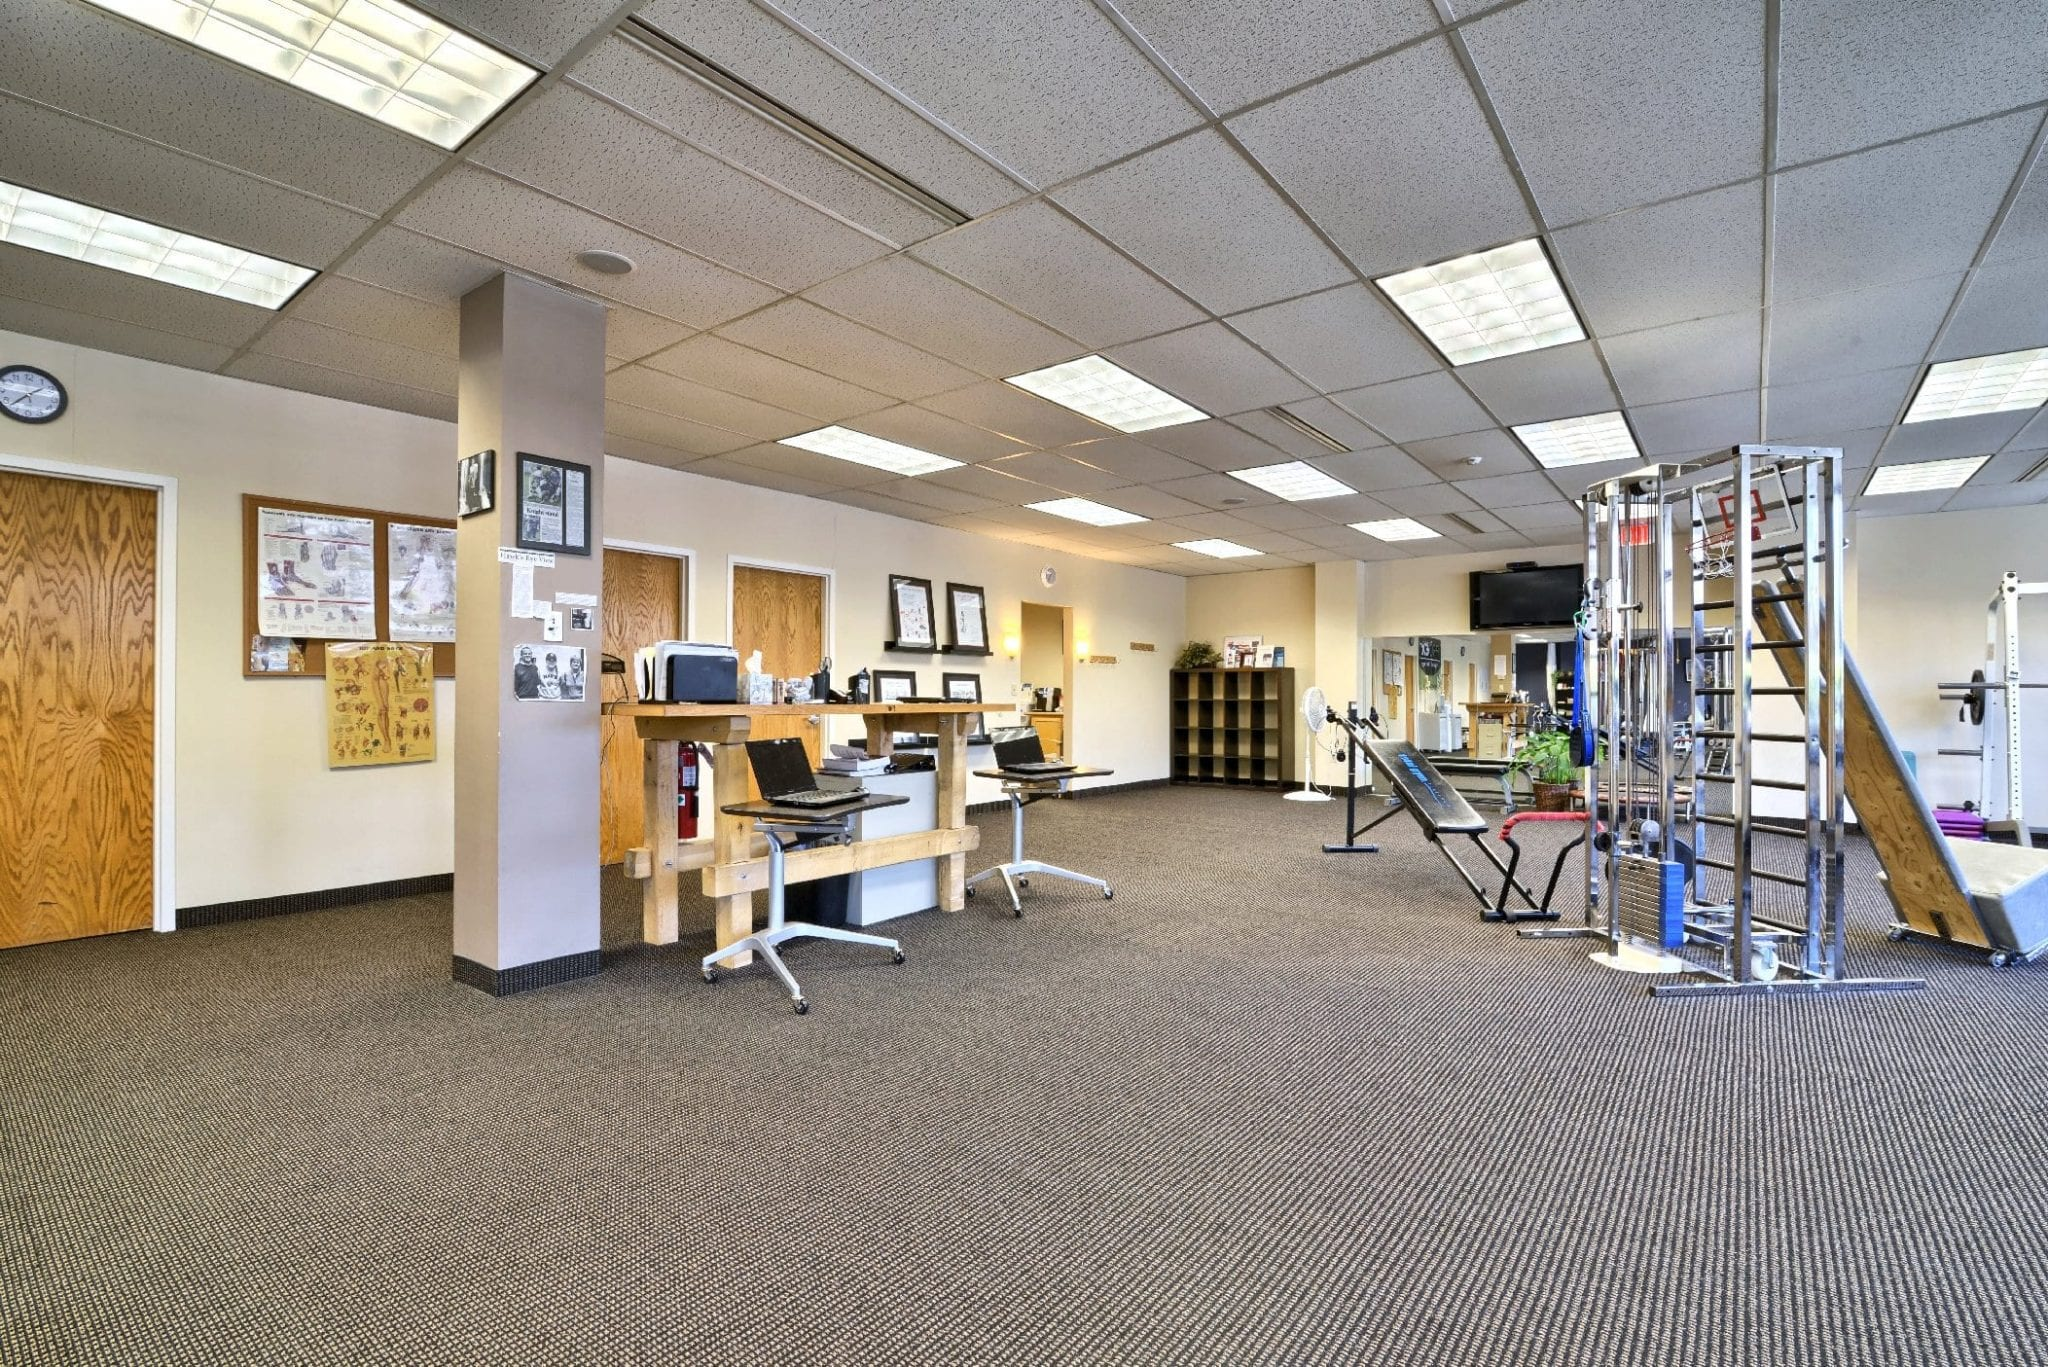 A photo of the inside of our physical therapy clinic in Farmington, Connecticut.